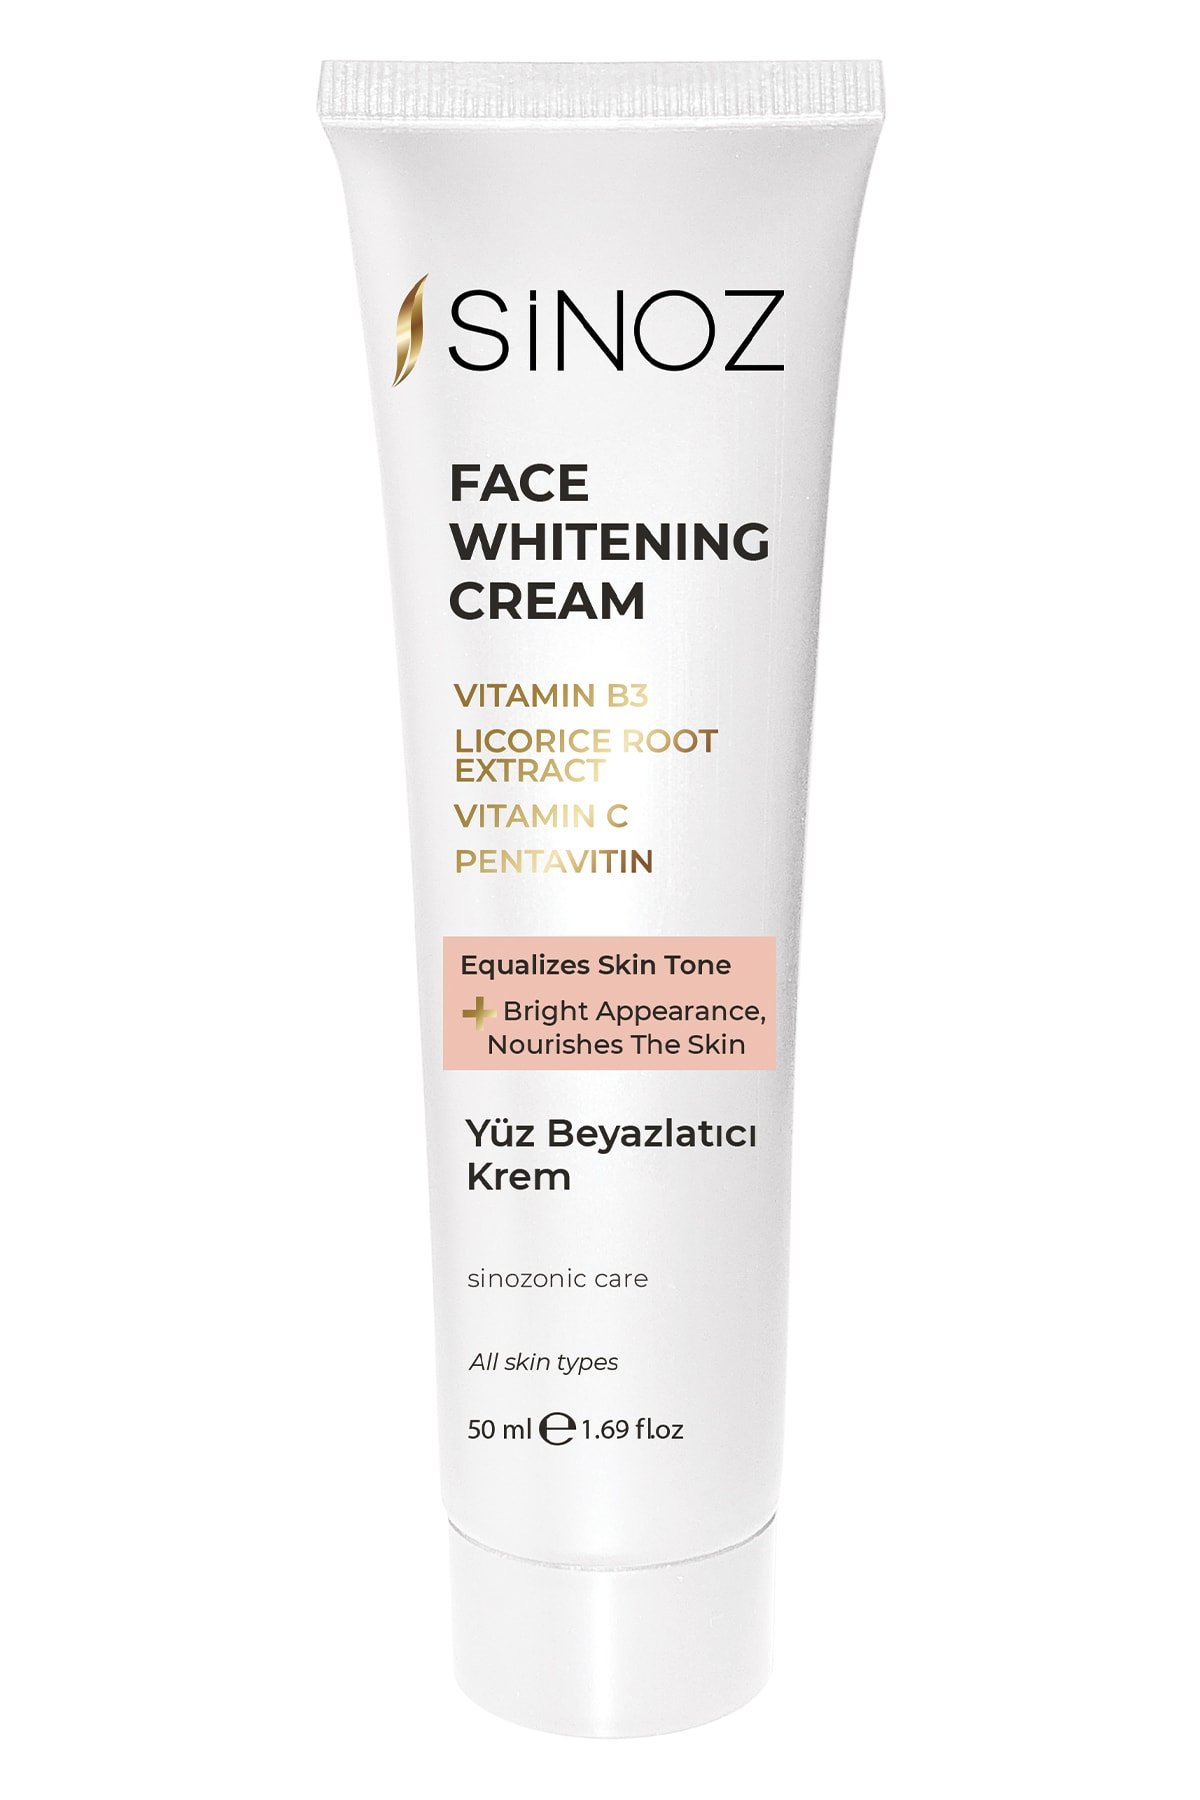 Sinoz Face Whitening Cream with Vitamin B3, licorice root extract, vitamin C and pentavitin extract, a bright and smooth skin